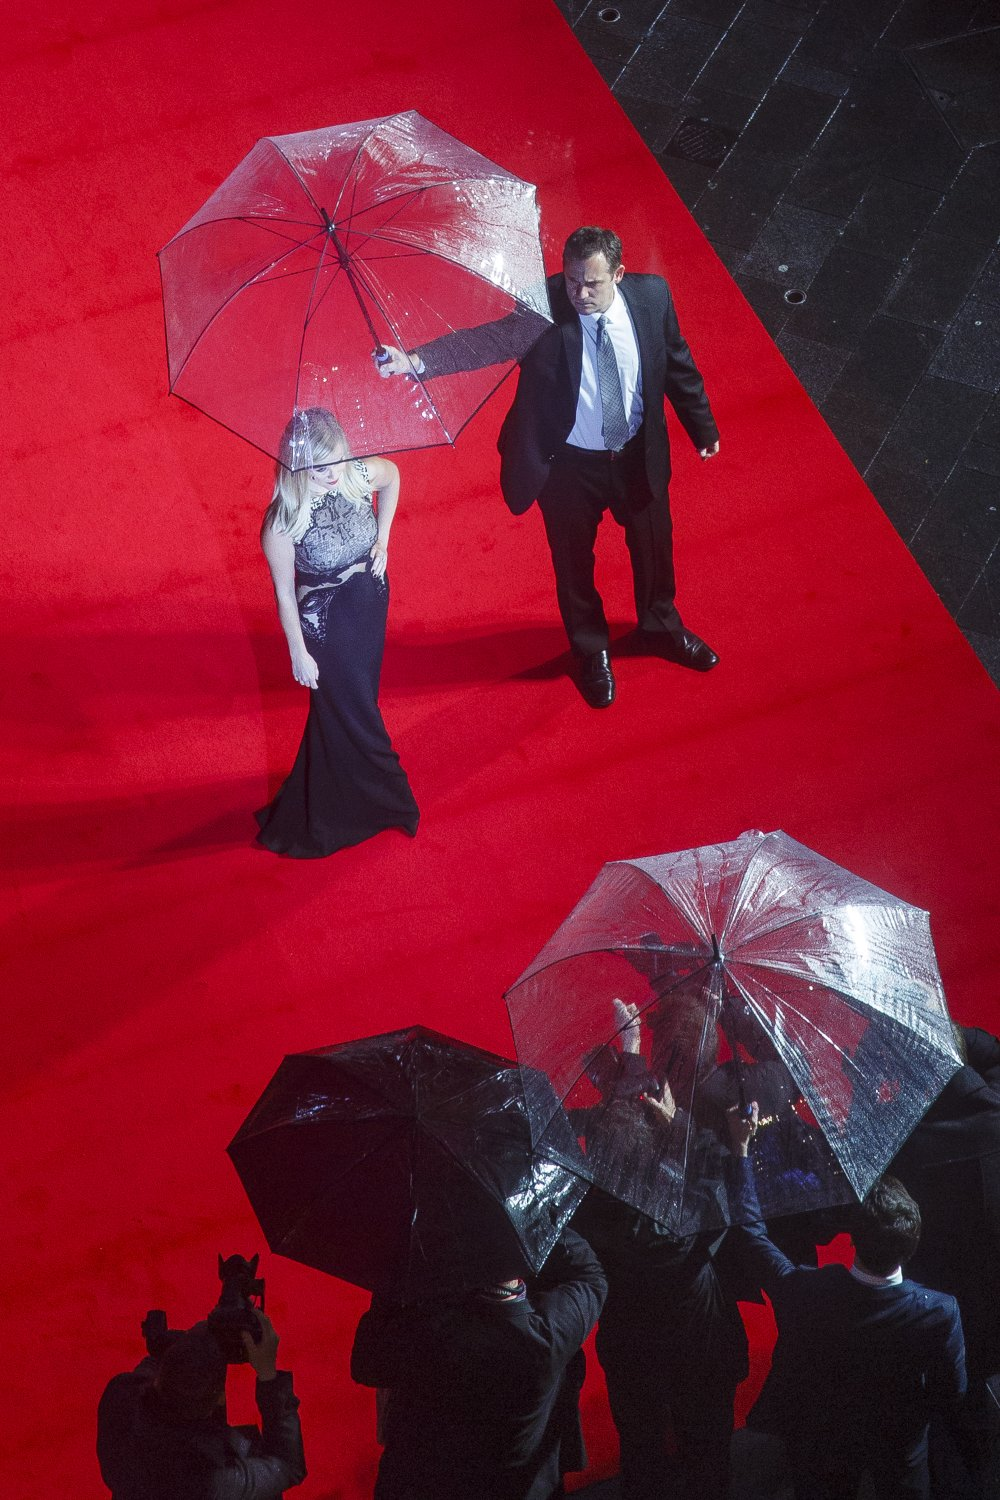 Reese Witherspoon attends the premiere of Wild at the 58th London Film Festival